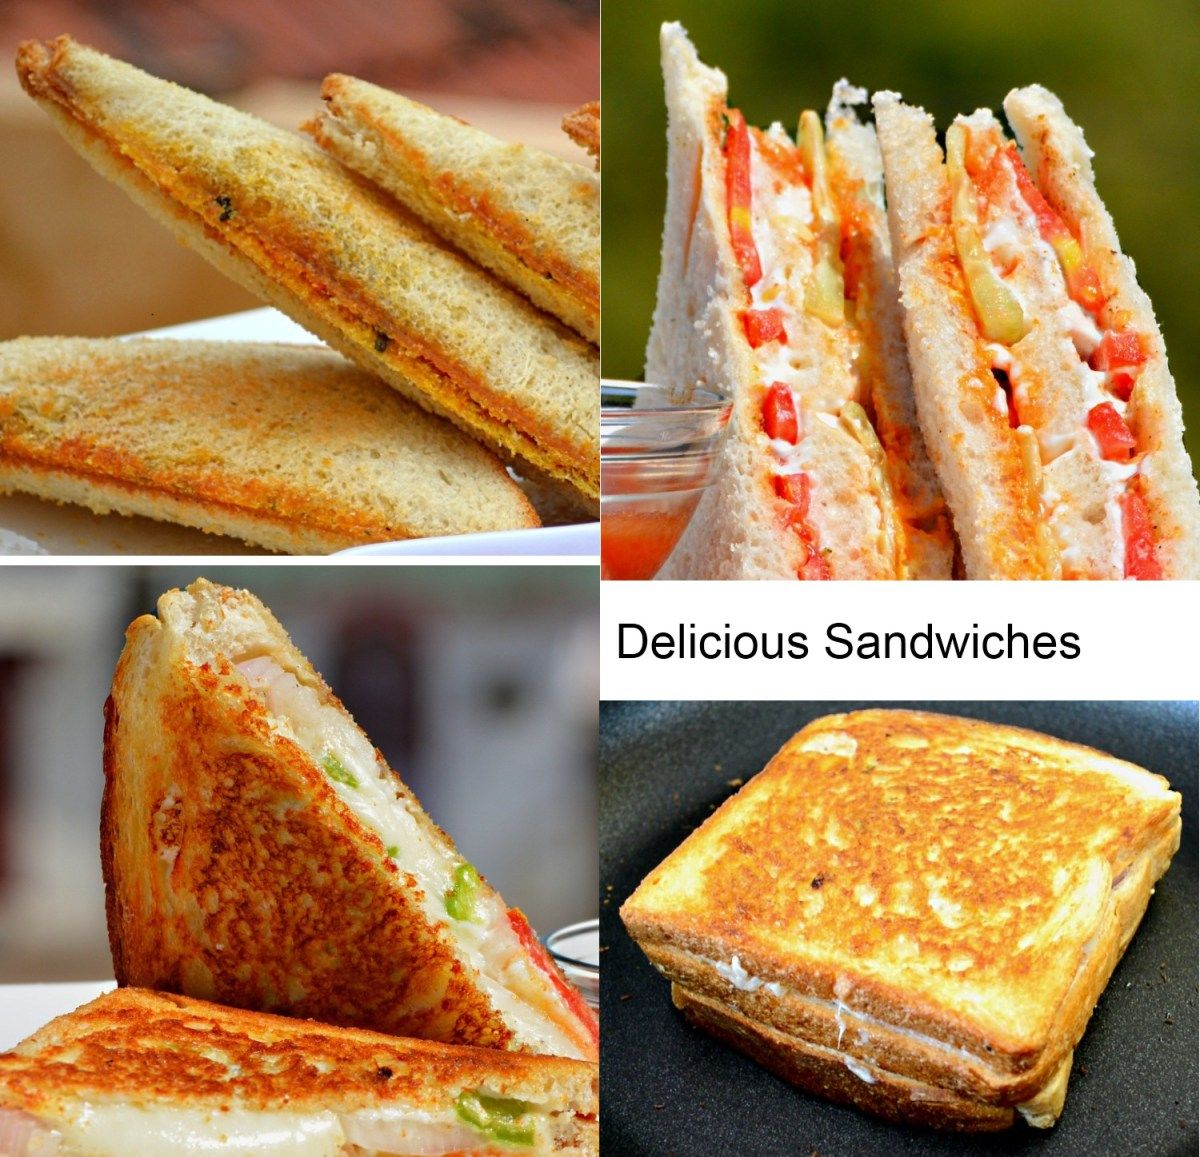 Top 5 indian sandwich recipes with step pictures food network sandwiches are the most preferable fast foods and here you will find top 5 indian sandwich recipes with step by step pictures forumfinder Images